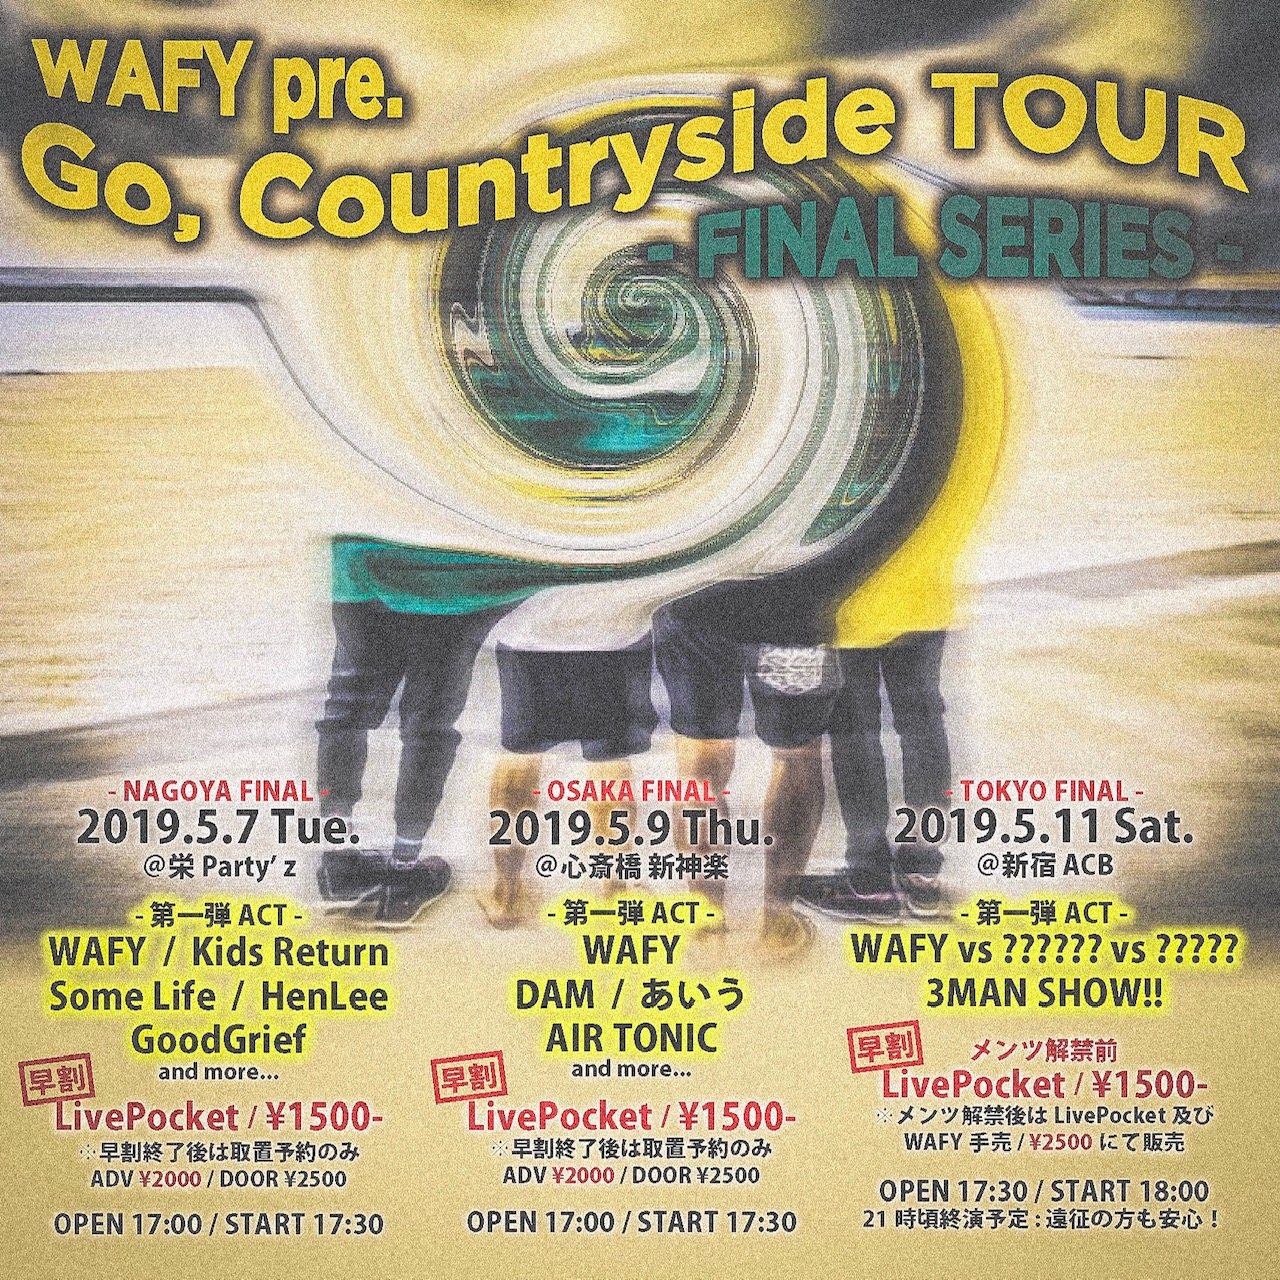 WAFY pre. Go,Countryside TOUR 2019 -NAGOYA FINAL-